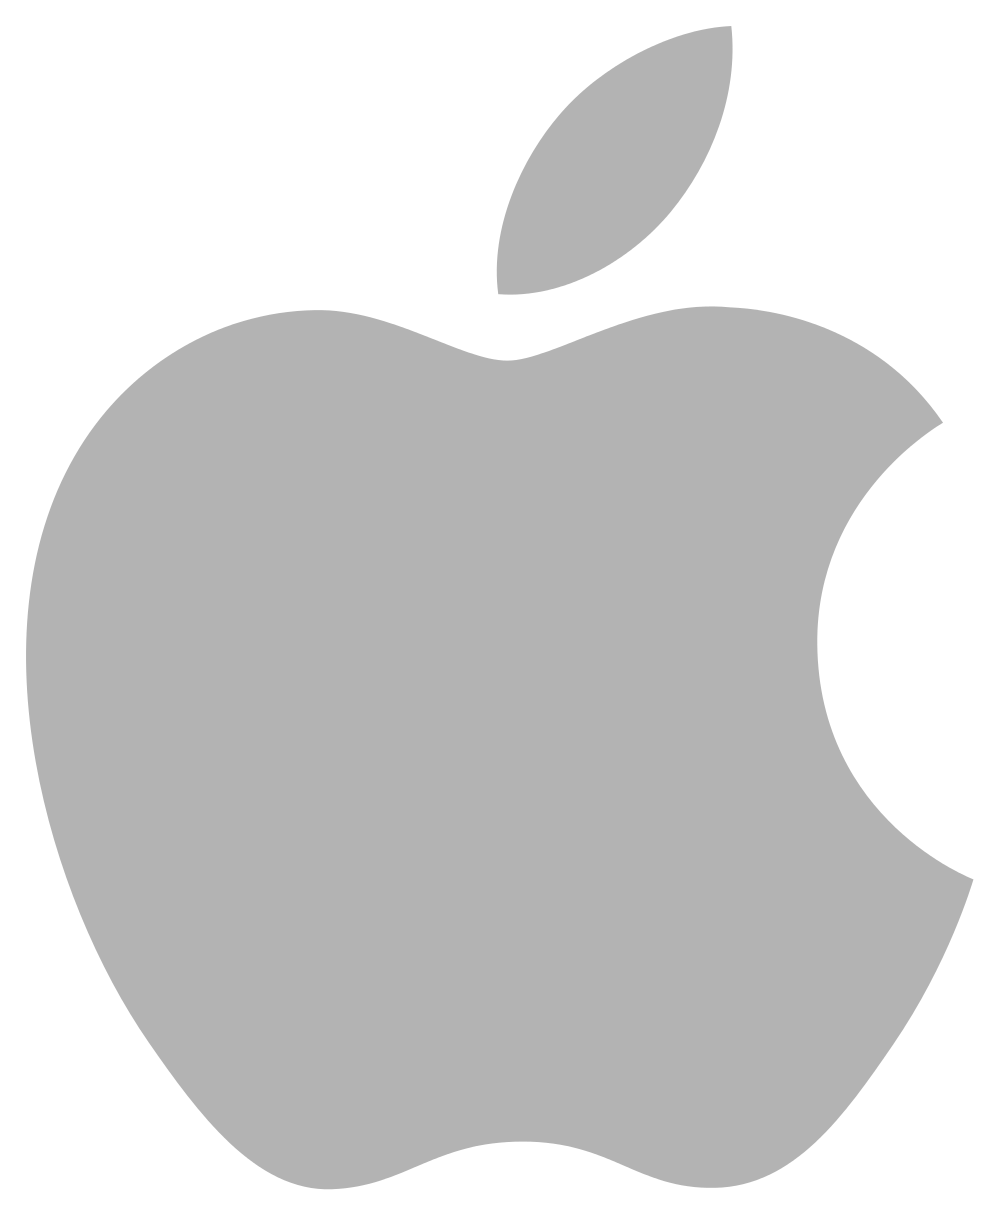 Apple symbol clipart picture black and white download 28+ Collection of Apple Inc Clipart | High quality, free cliparts ... picture black and white download